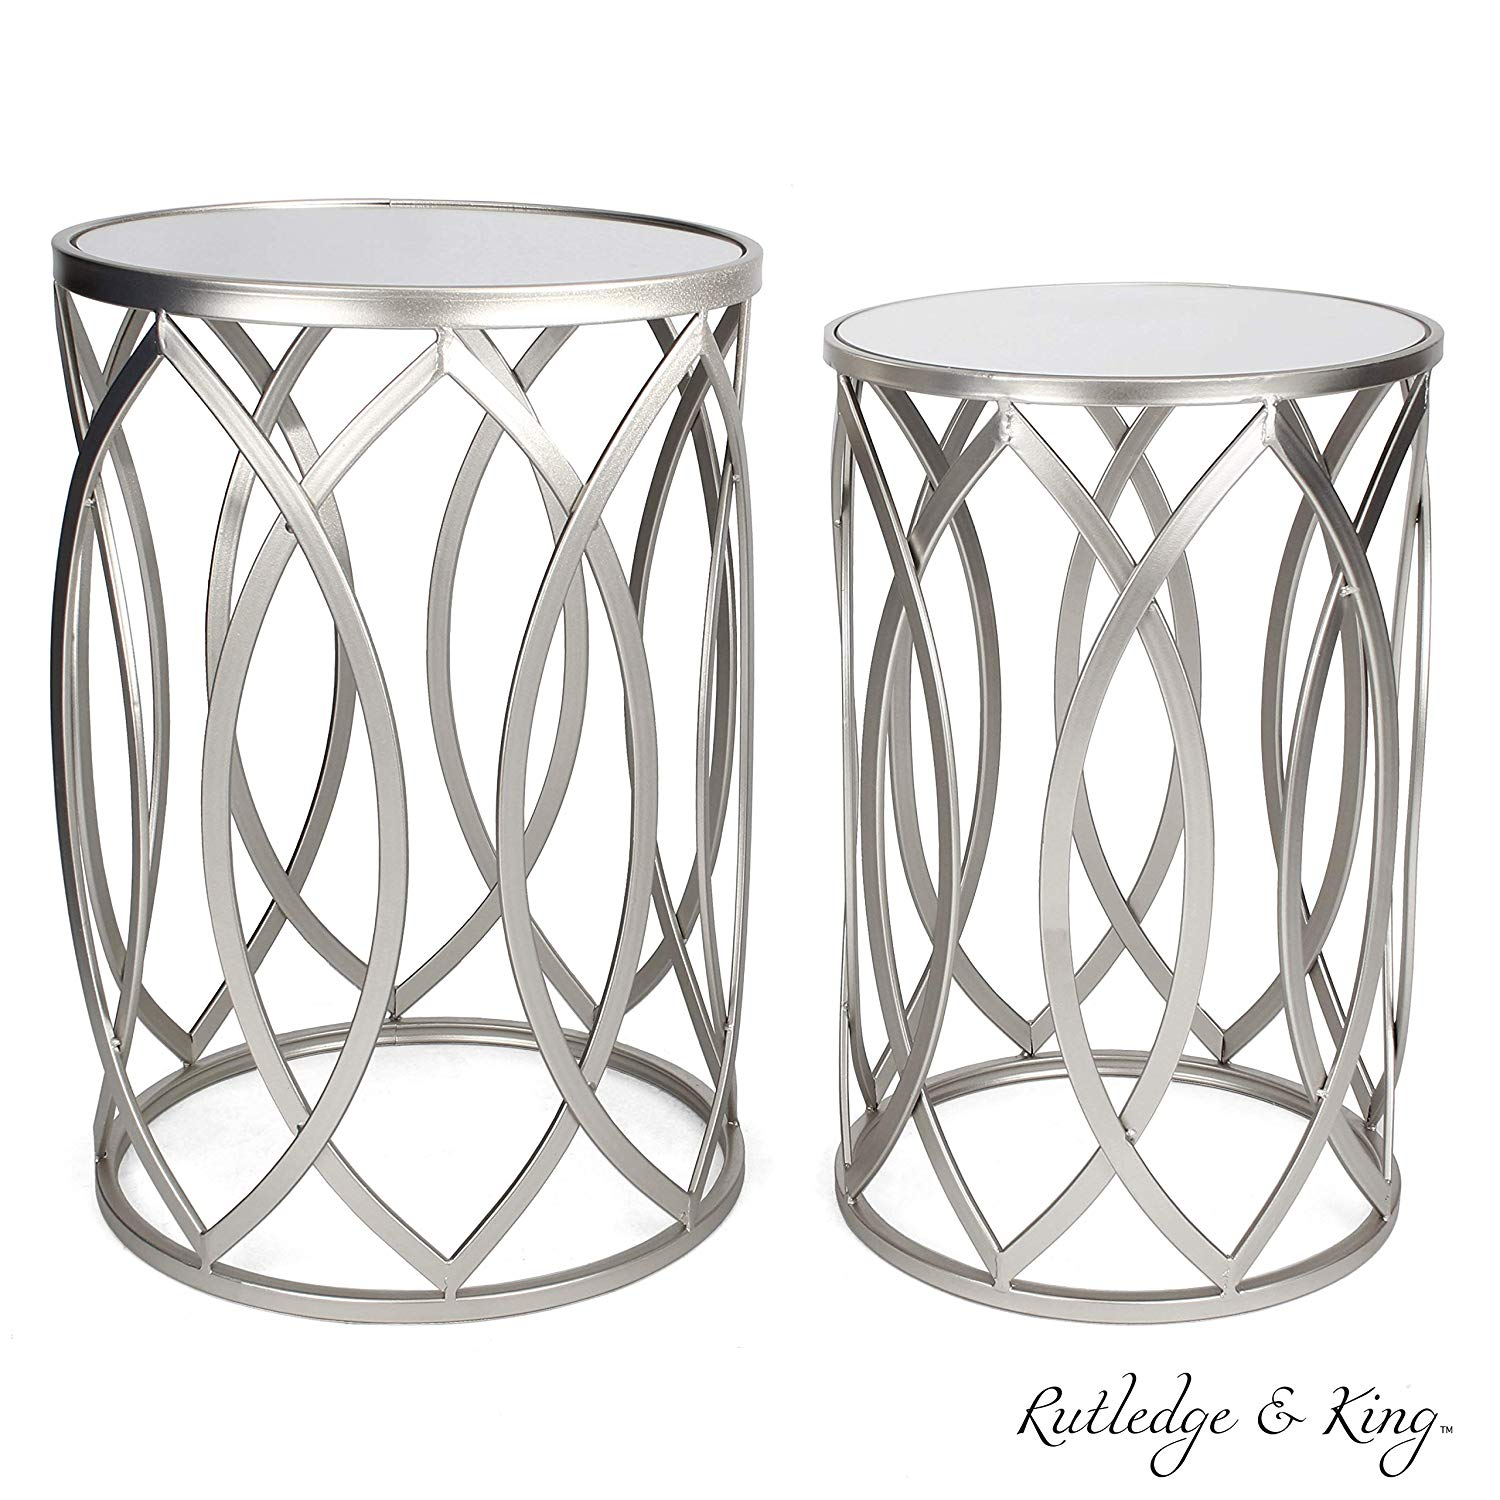 Picture of: Round End Table Set Silver End Tables With Mirrored Tops Nesting Round Accent Tables Silver And Mirrored Metal Side Tables Rutledge King Blufton End Table Set Walmart Com Walmart Com